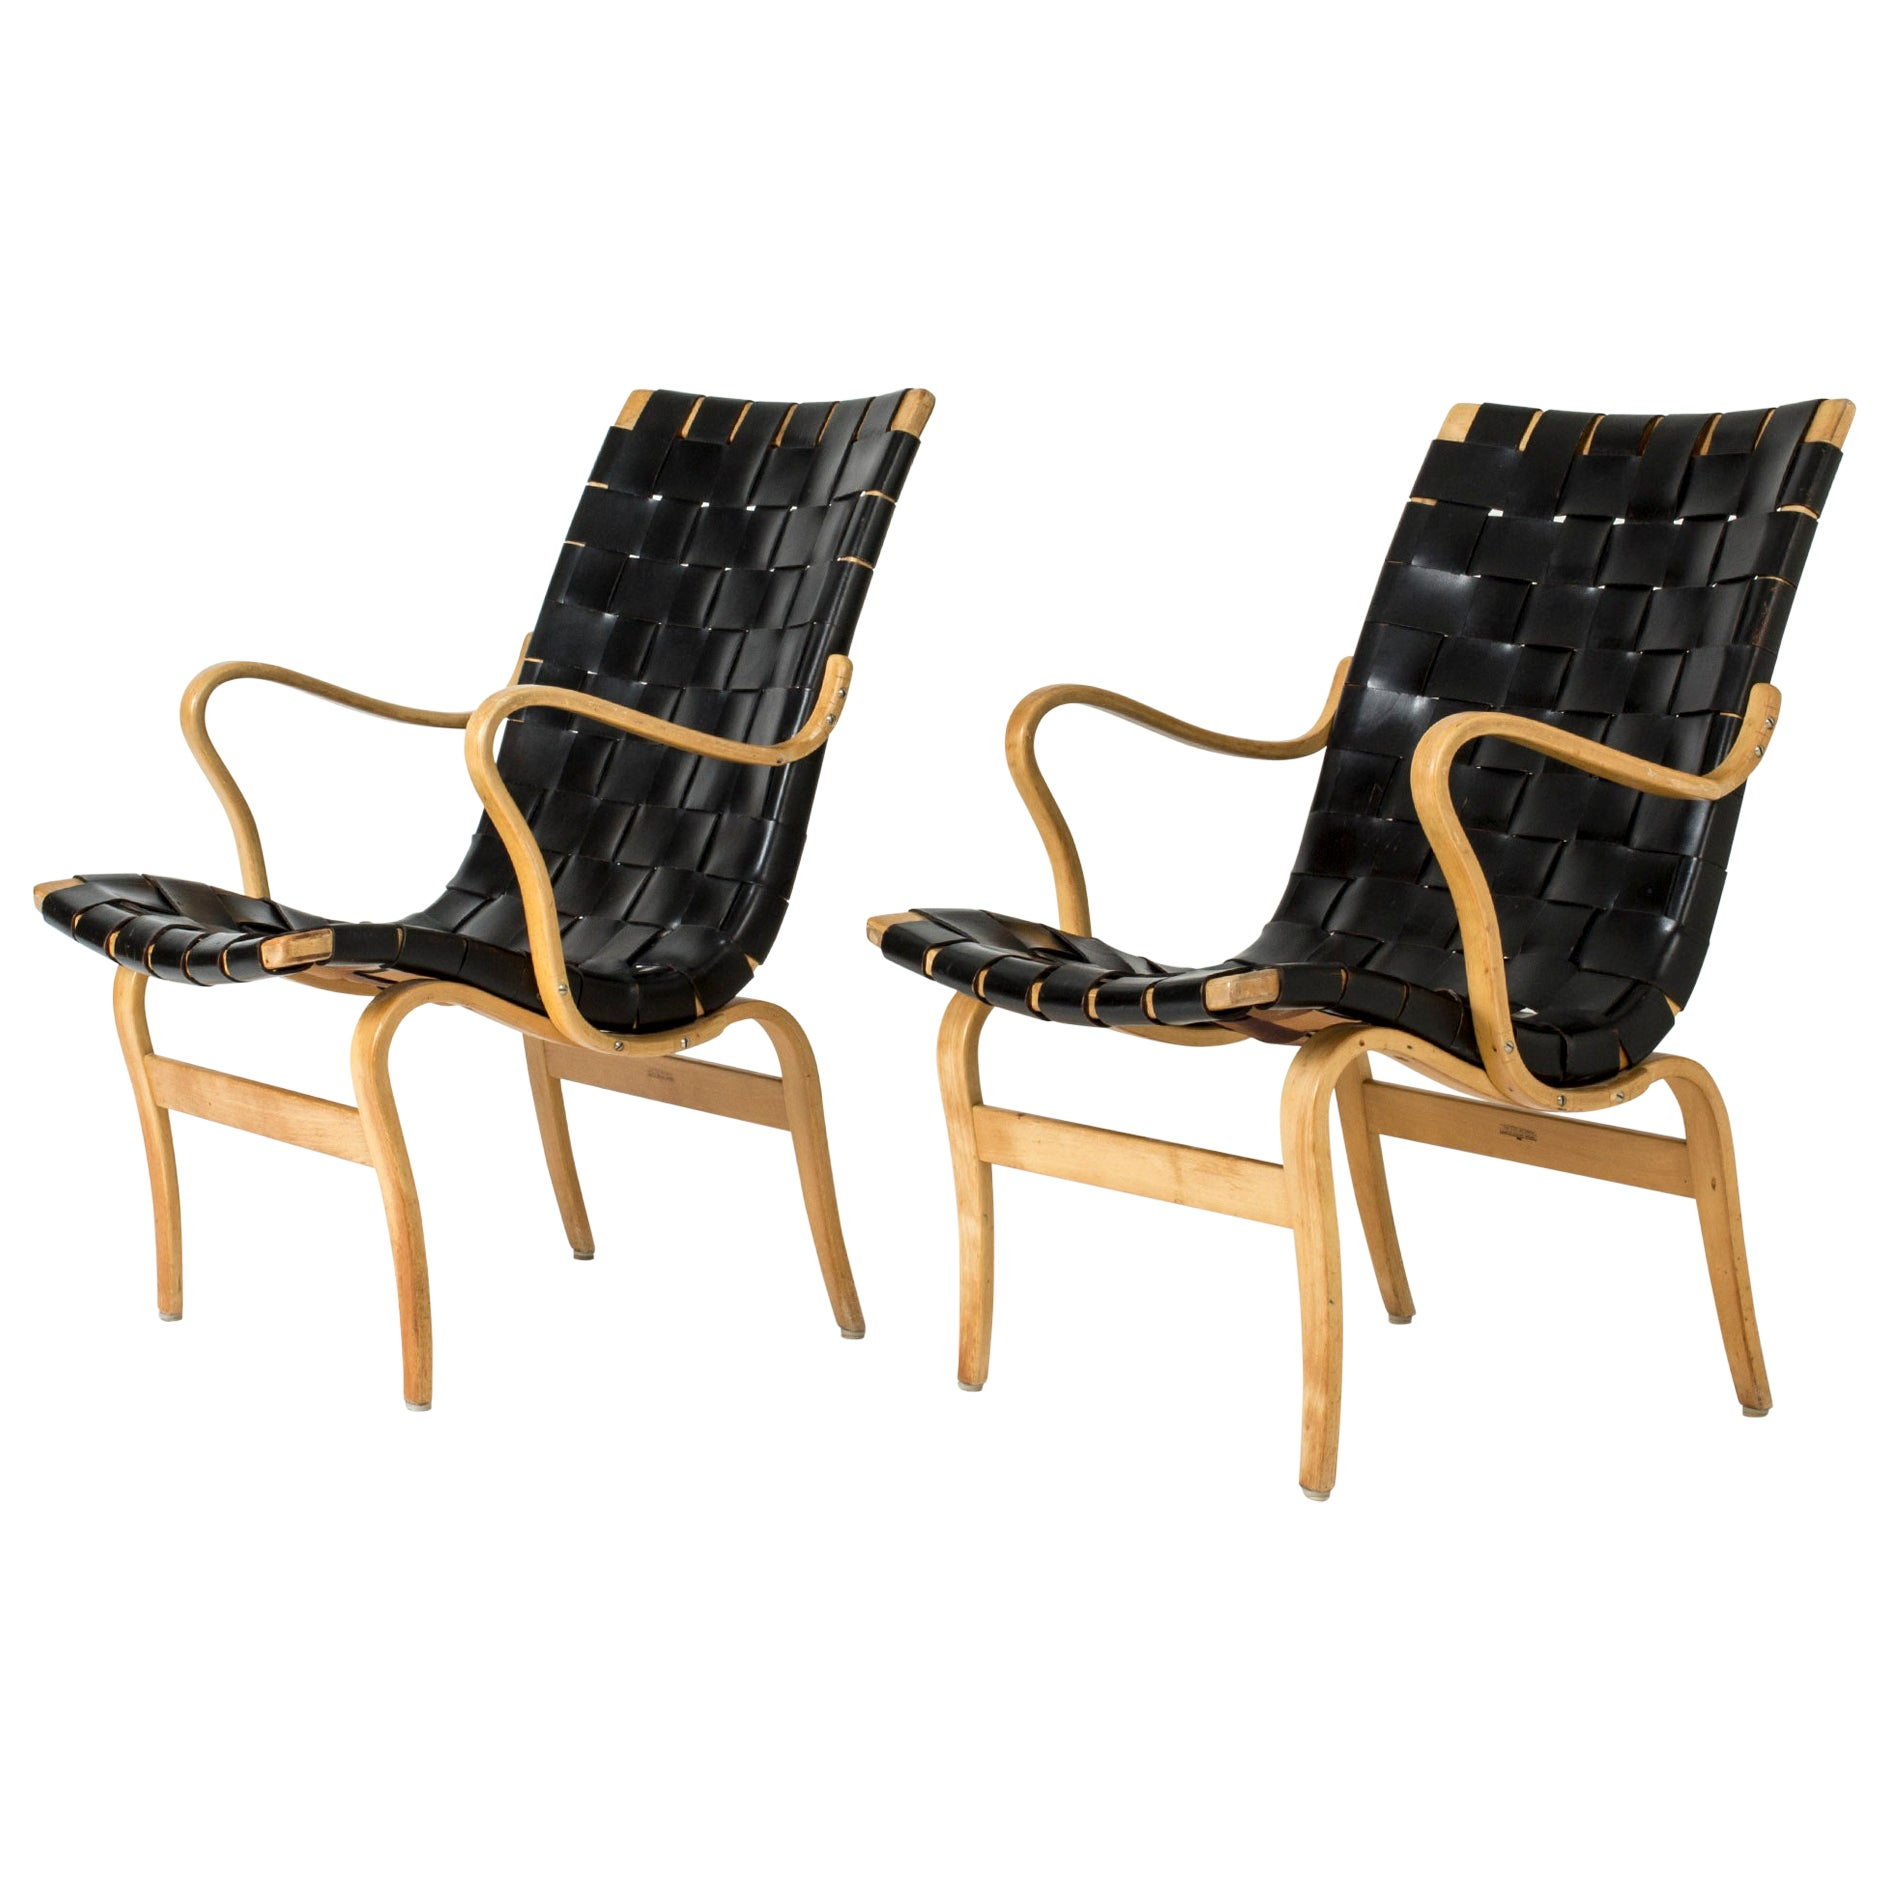 "Pair of ""Eva"" Chairs by Bruno Mathsson for Karl Mathsson, Sweden, 1967"